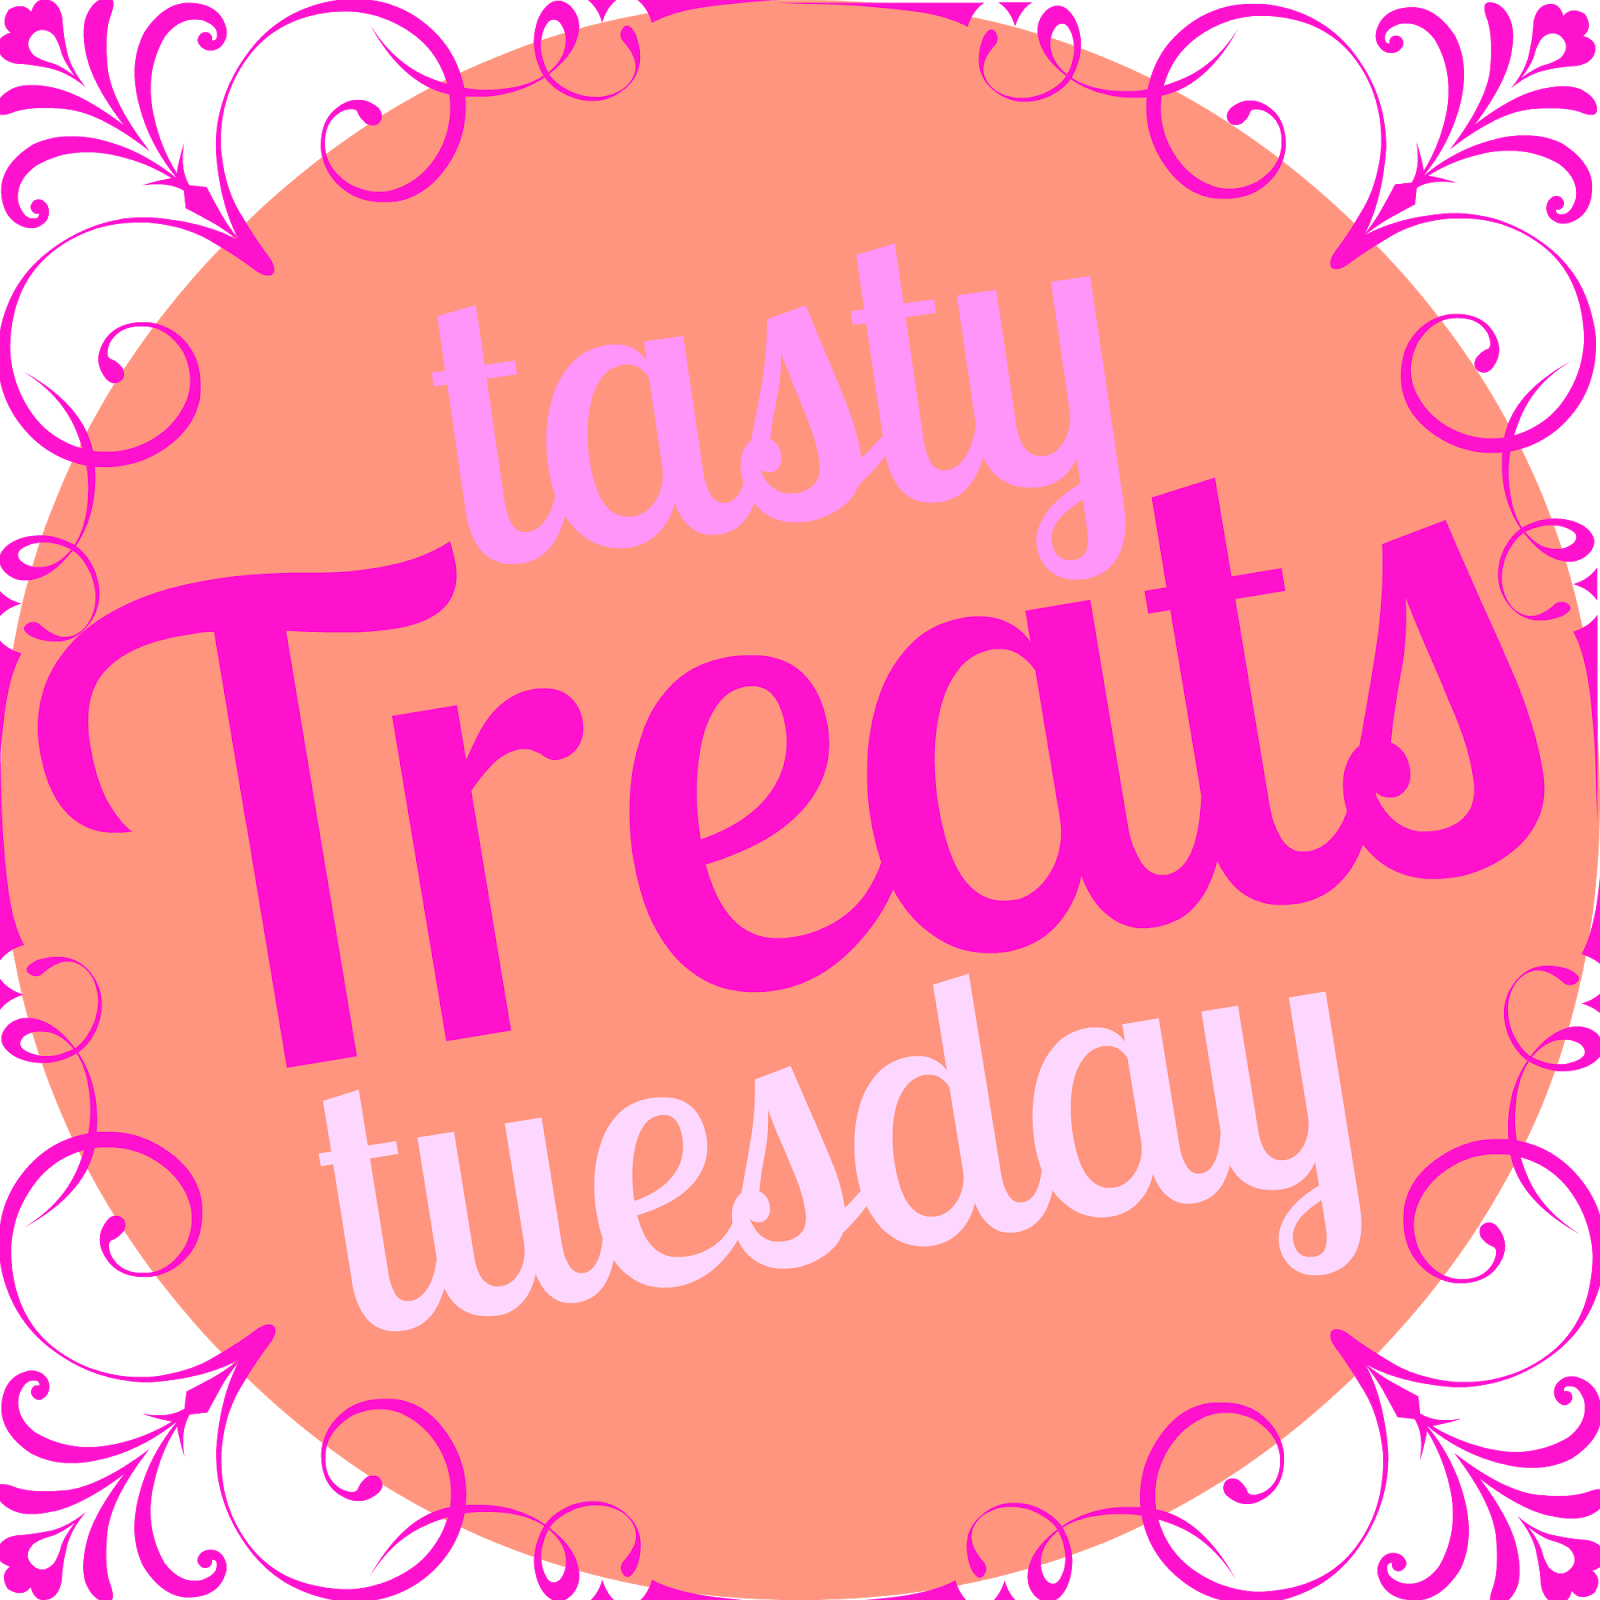 Tasty Treats Tuesday